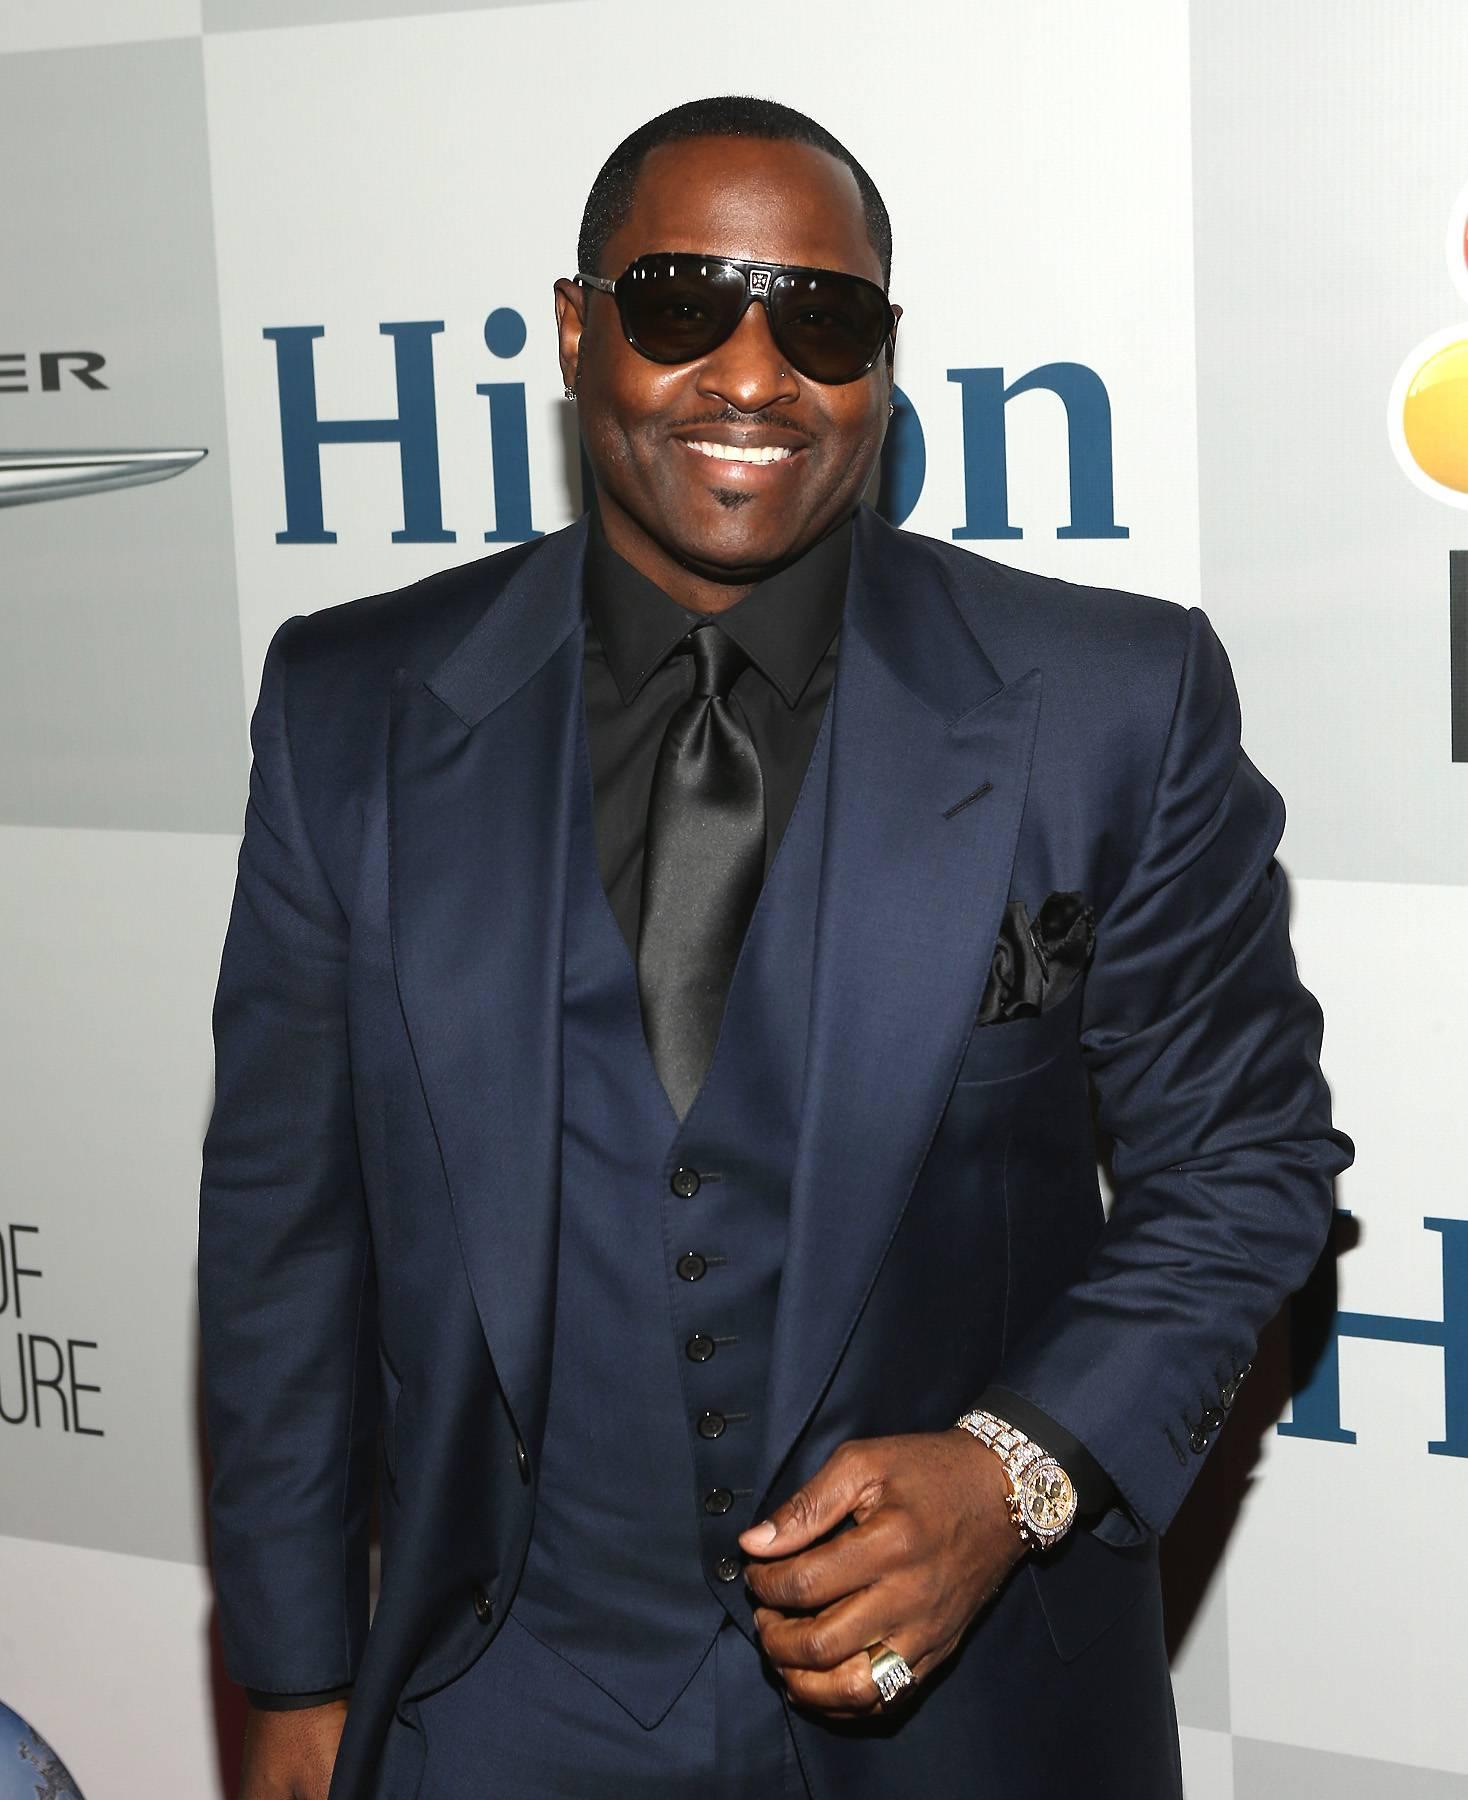 The Game Changer  - Johnny Gill released his latest album Game Changer, which is his seventh studio album. On this album, you feel the nostalgic vibes of the '80s and '90s R&B that maintains the funky style listeners love. (Photo: Jesse Grant/Getty Images for NBCUniversal)